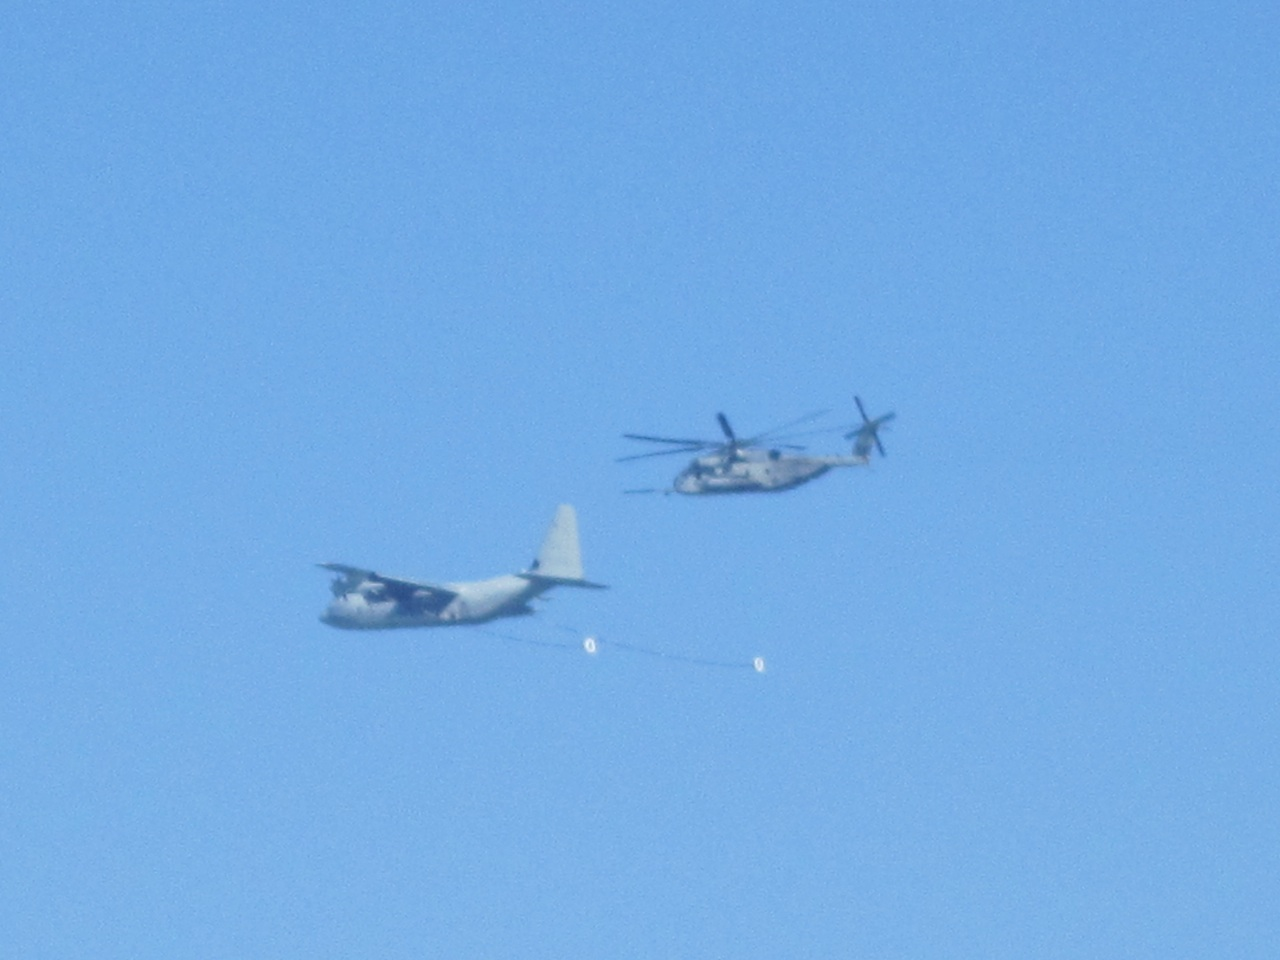 Refueling Plane and Helicopter